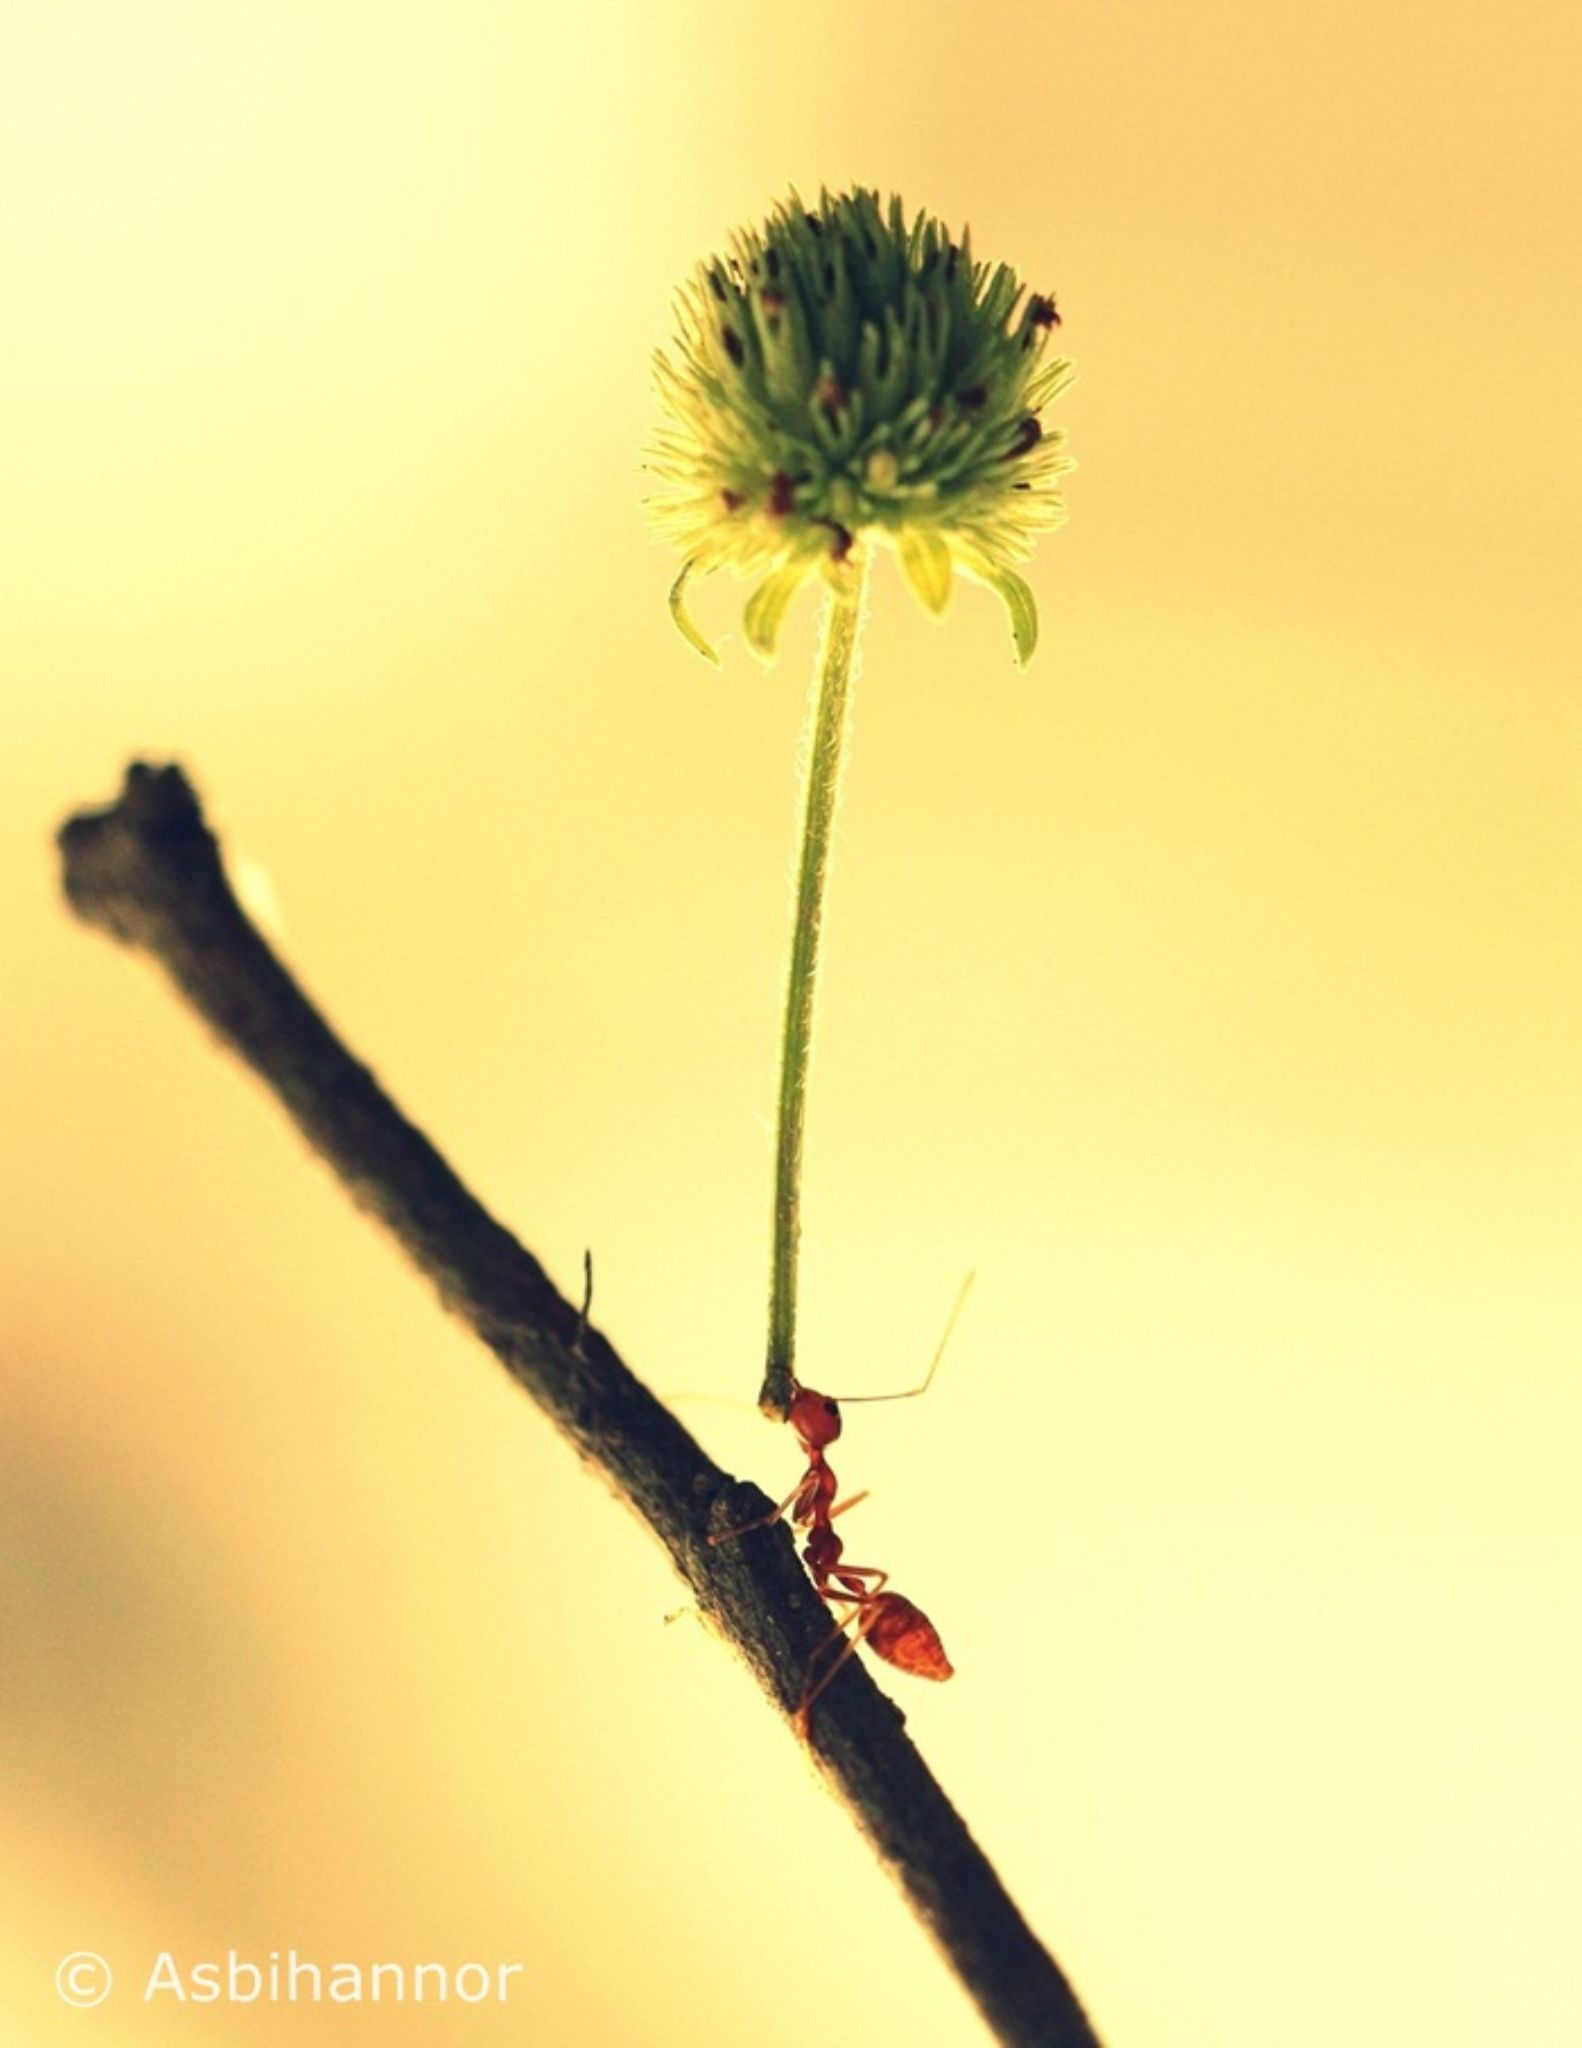 Power of the ant by Asbihannor